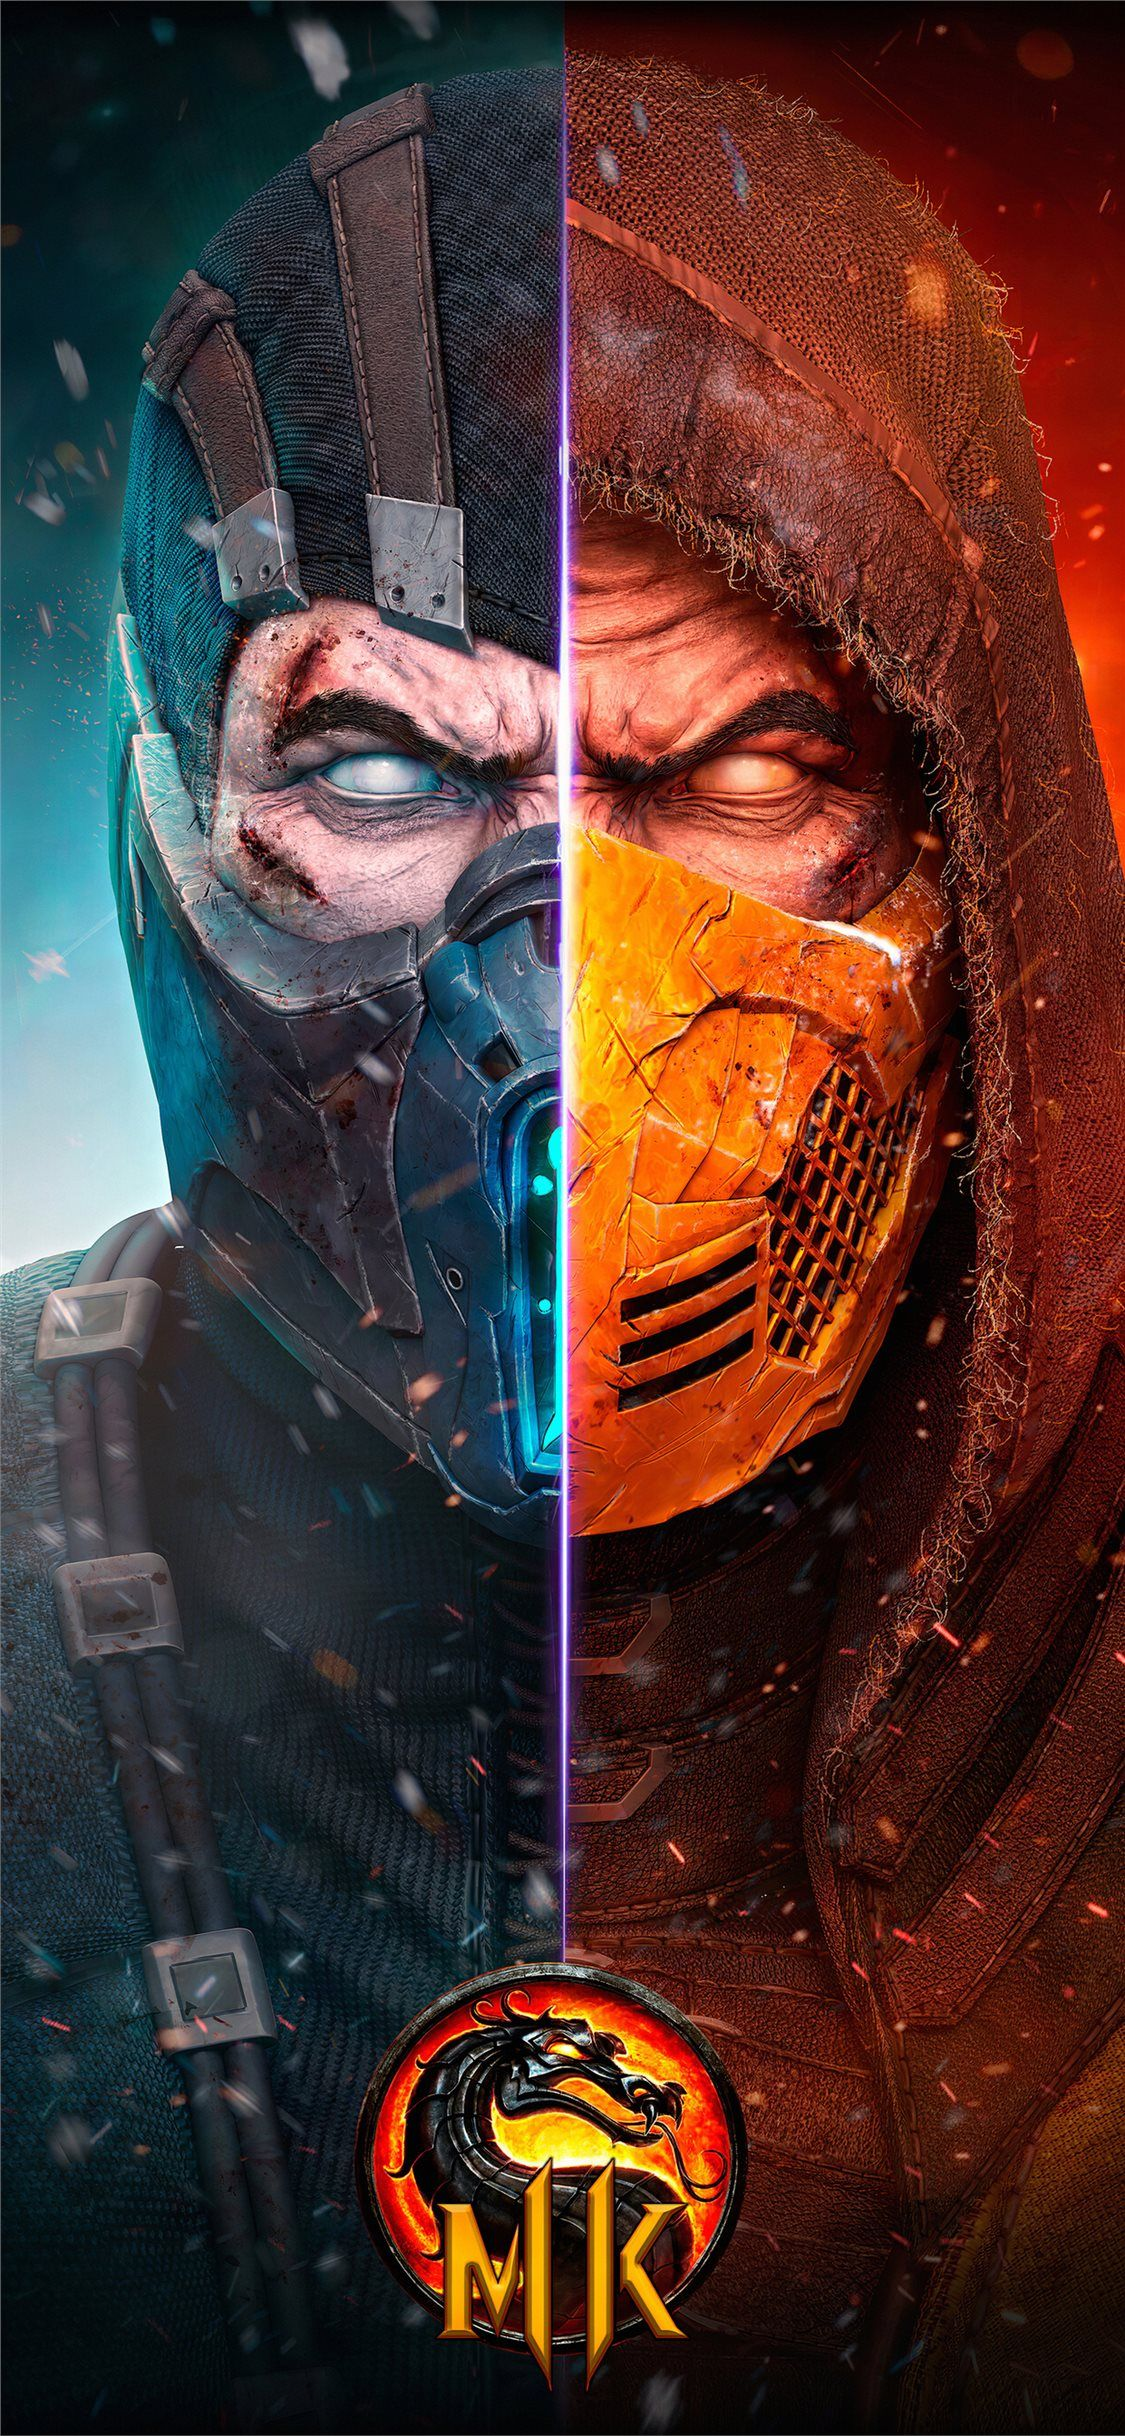 Scorpion Mortal Kombat X 4k New Iphone 11 Wallpapers Em 2020